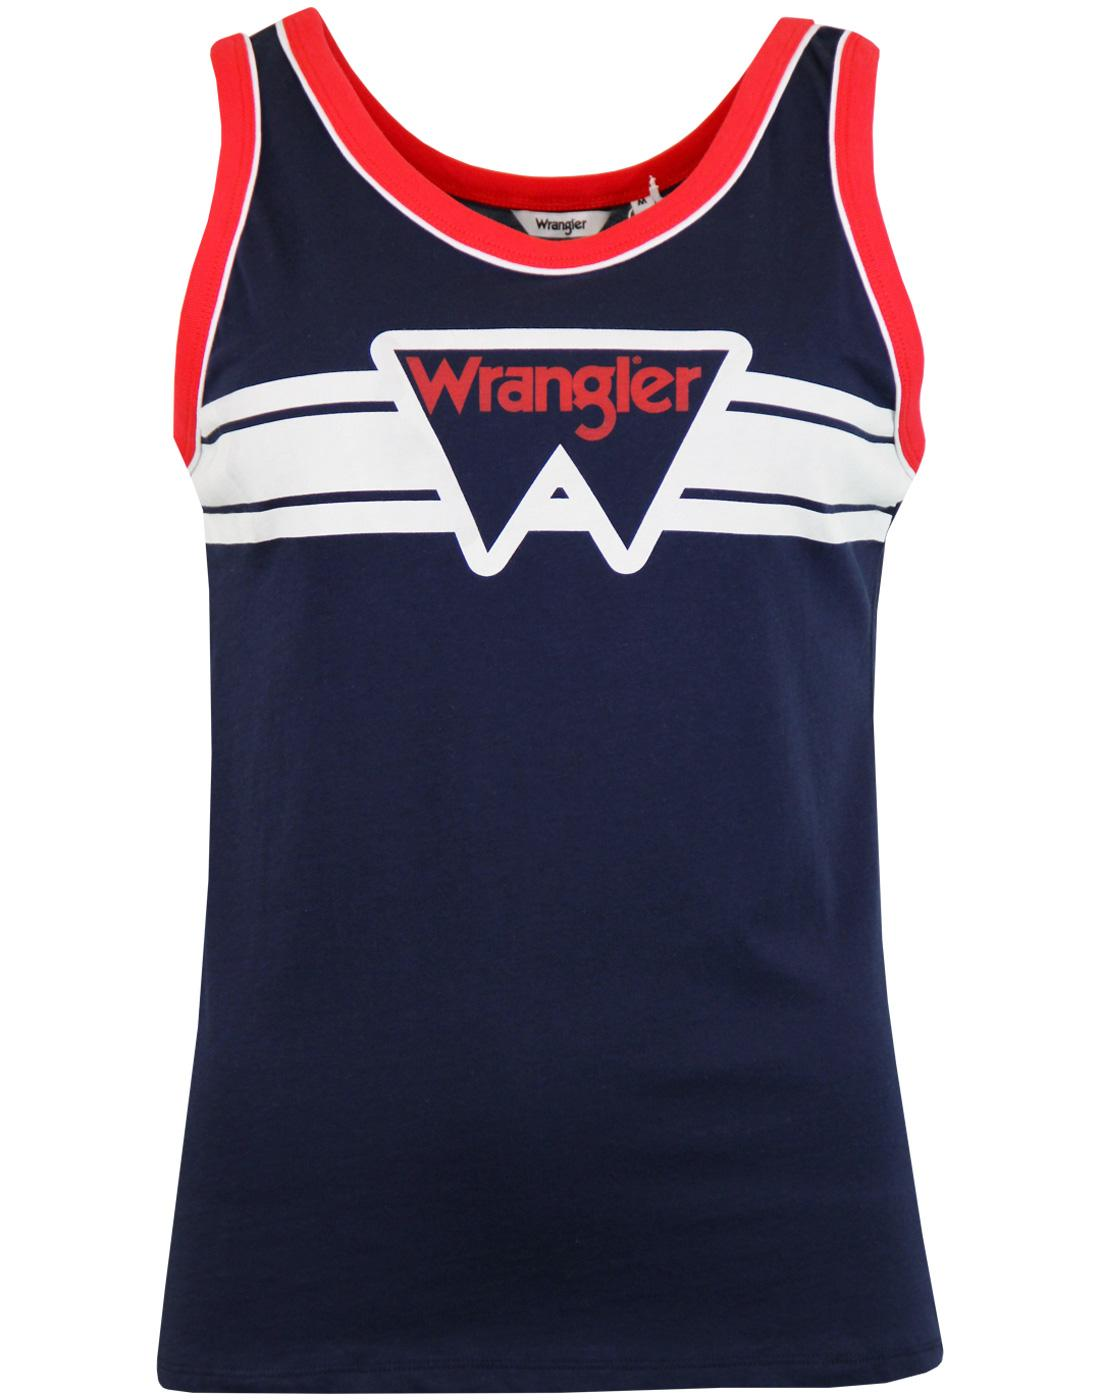 WRANGLER Women's Retro 1970s Box Logo Tank Top